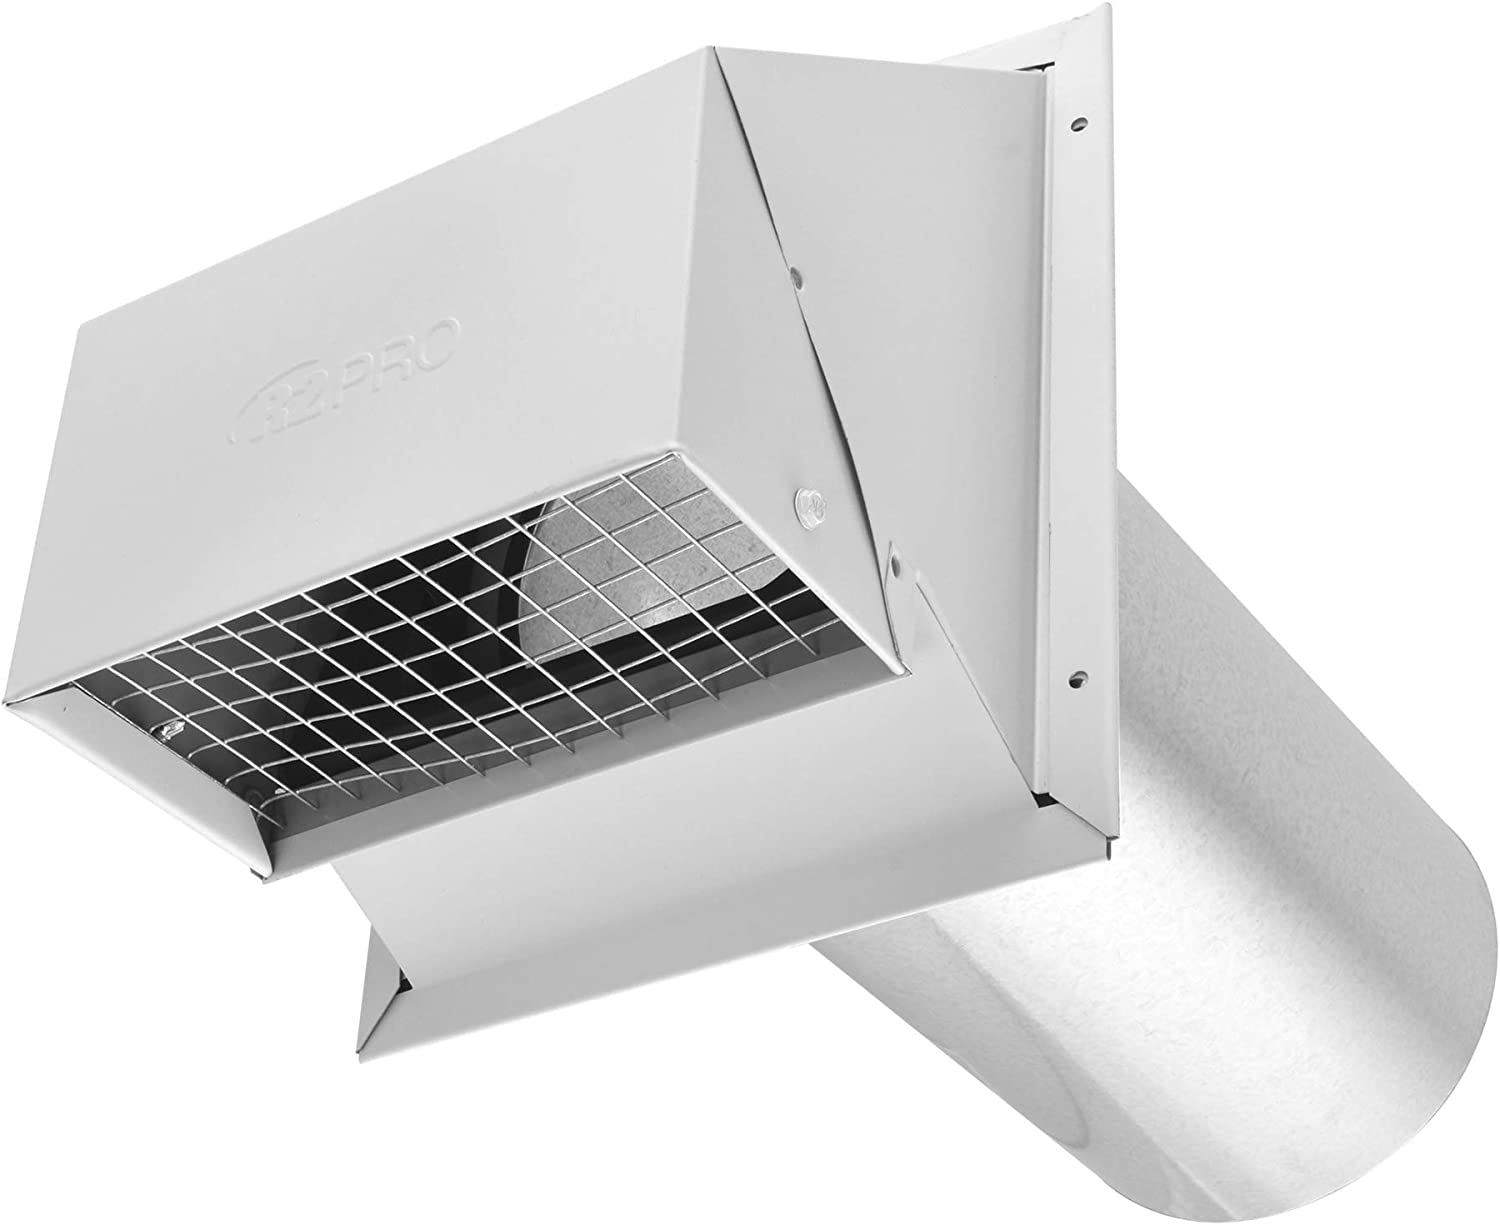 Imperial VT0503 6-Inch Heavy-Duty Outdoor Exhaust Vent with Intake Hood Conversion, 1-Pack